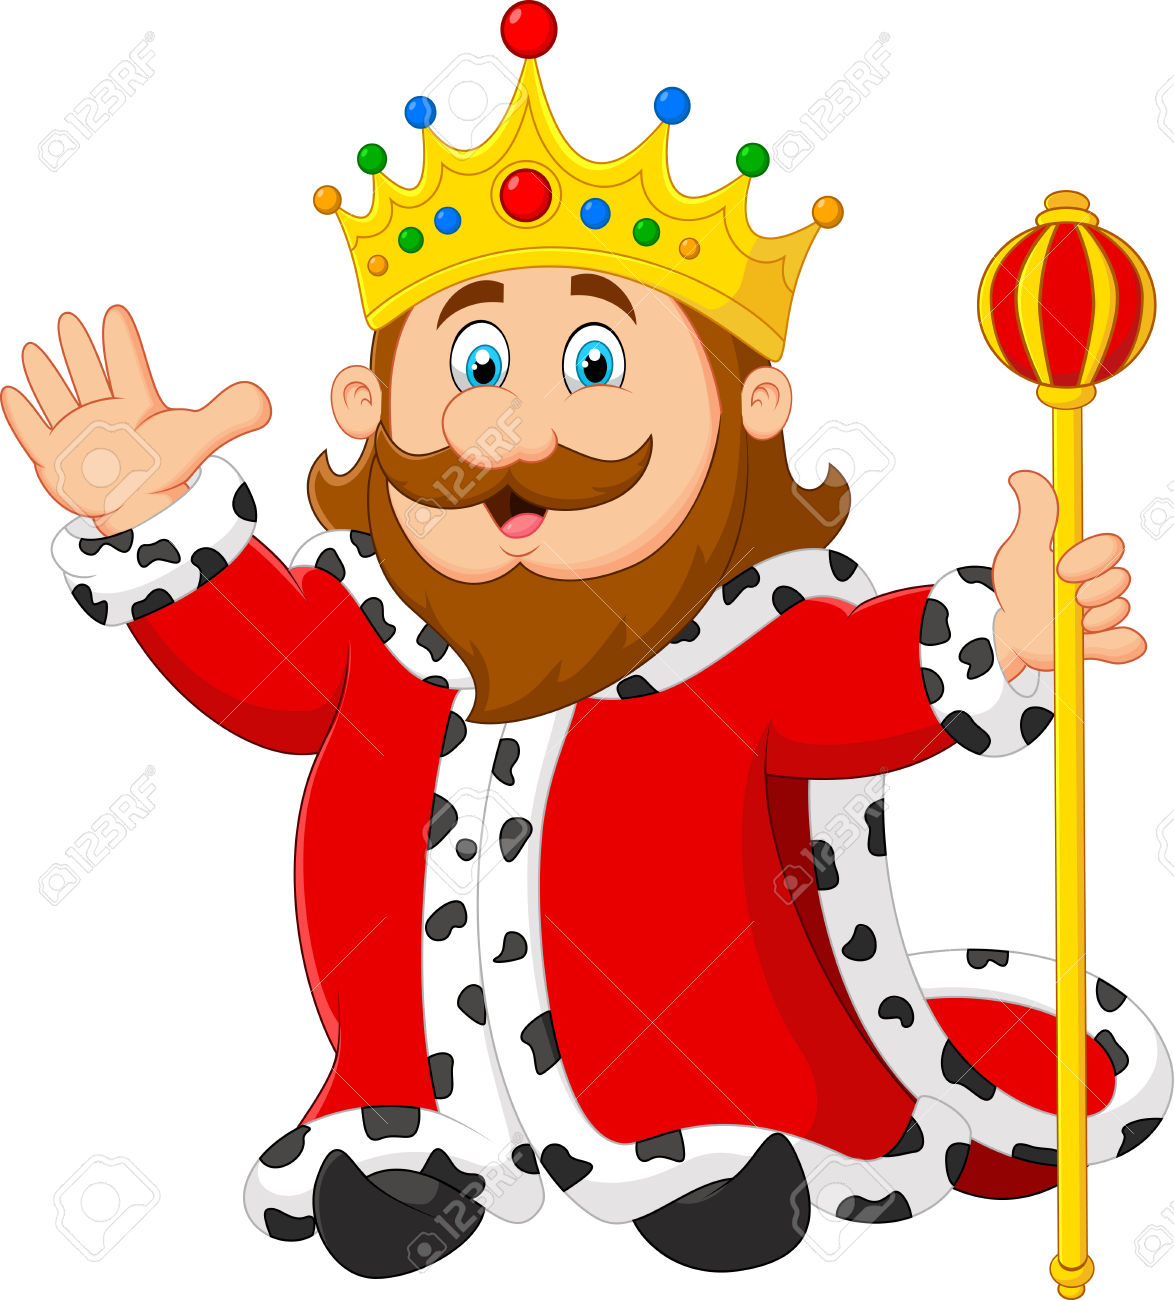 King pictures clipart svg black and white download Collection of King clipart | Free download best King clipart on ... svg black and white download